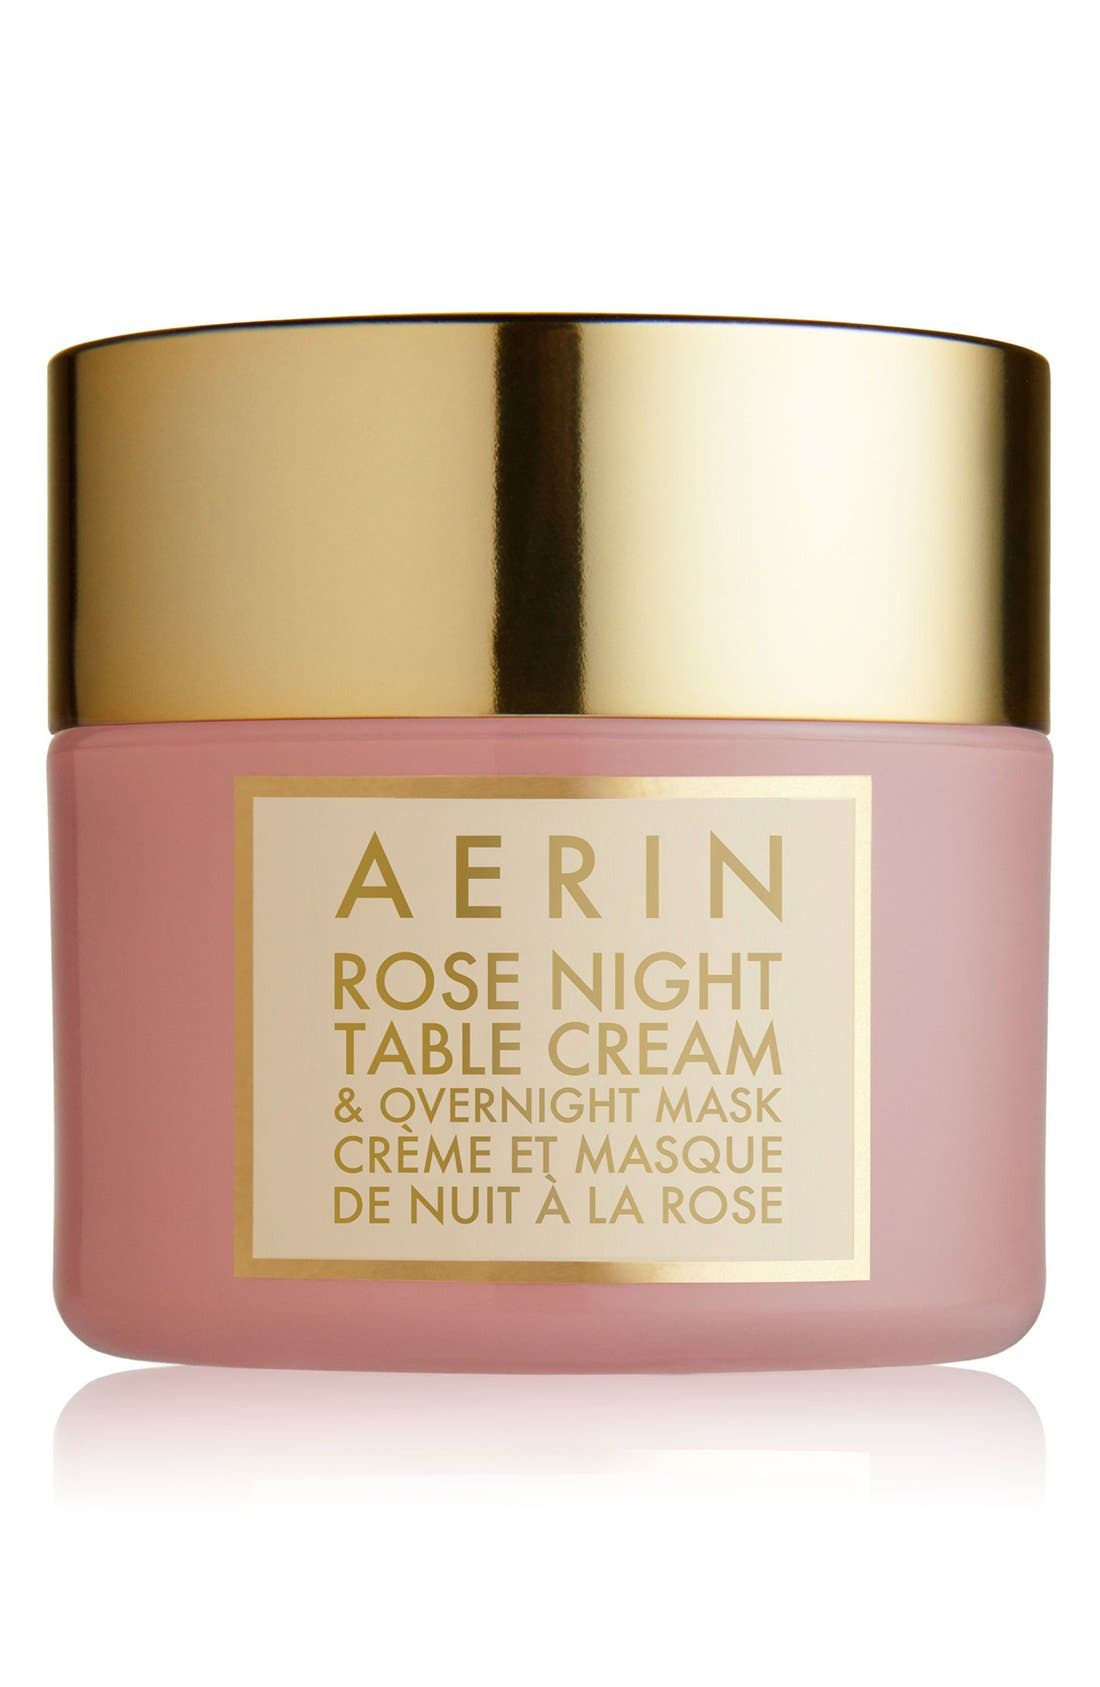 AERIN Beauty Rose Night Table Cream & Overnight Mask,                             Main thumbnail 1, color,                             NO COLOR